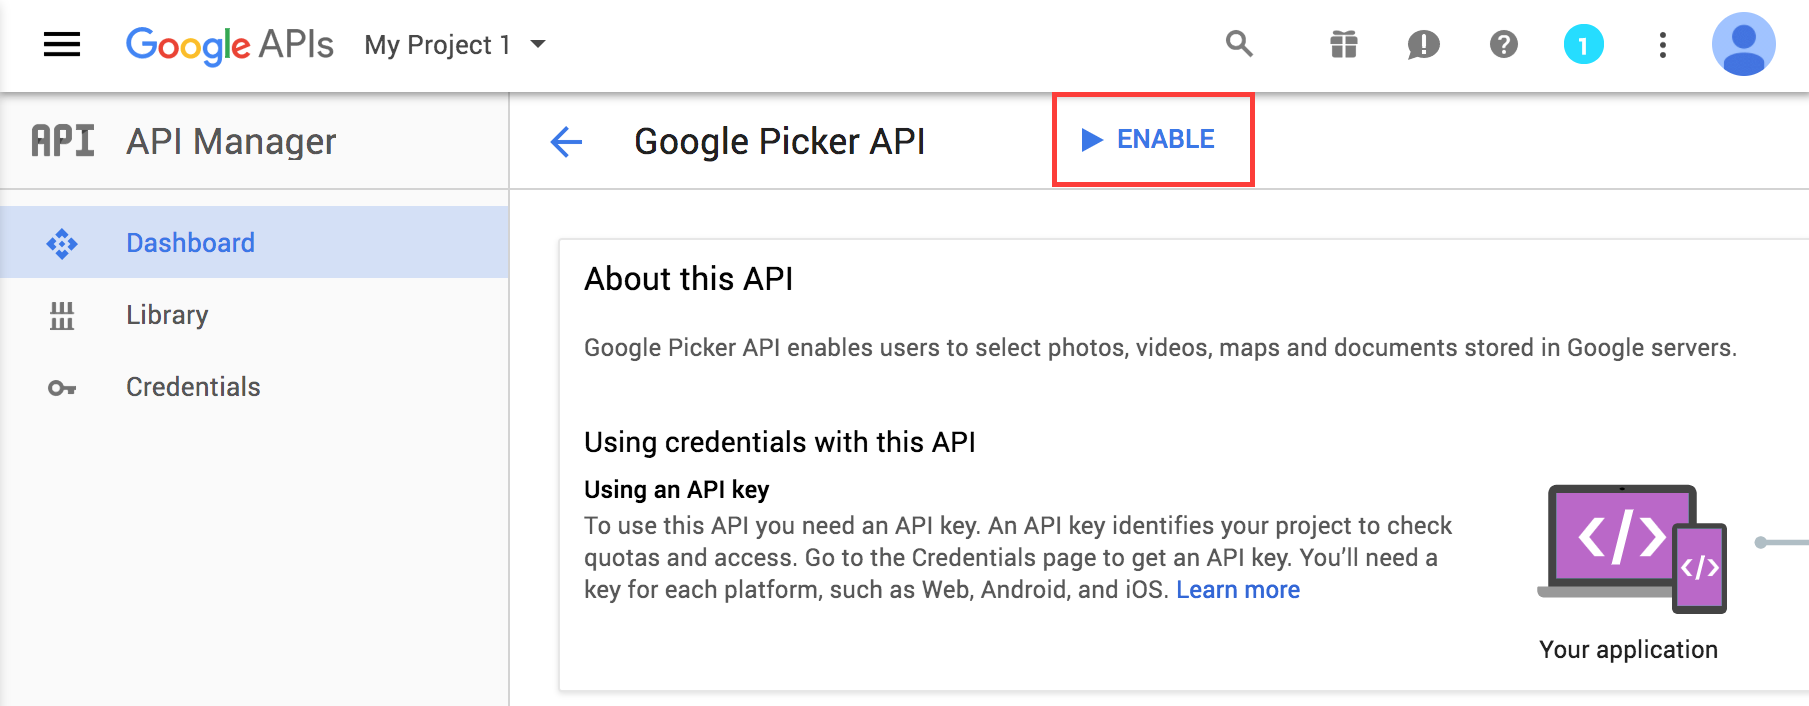 google picker